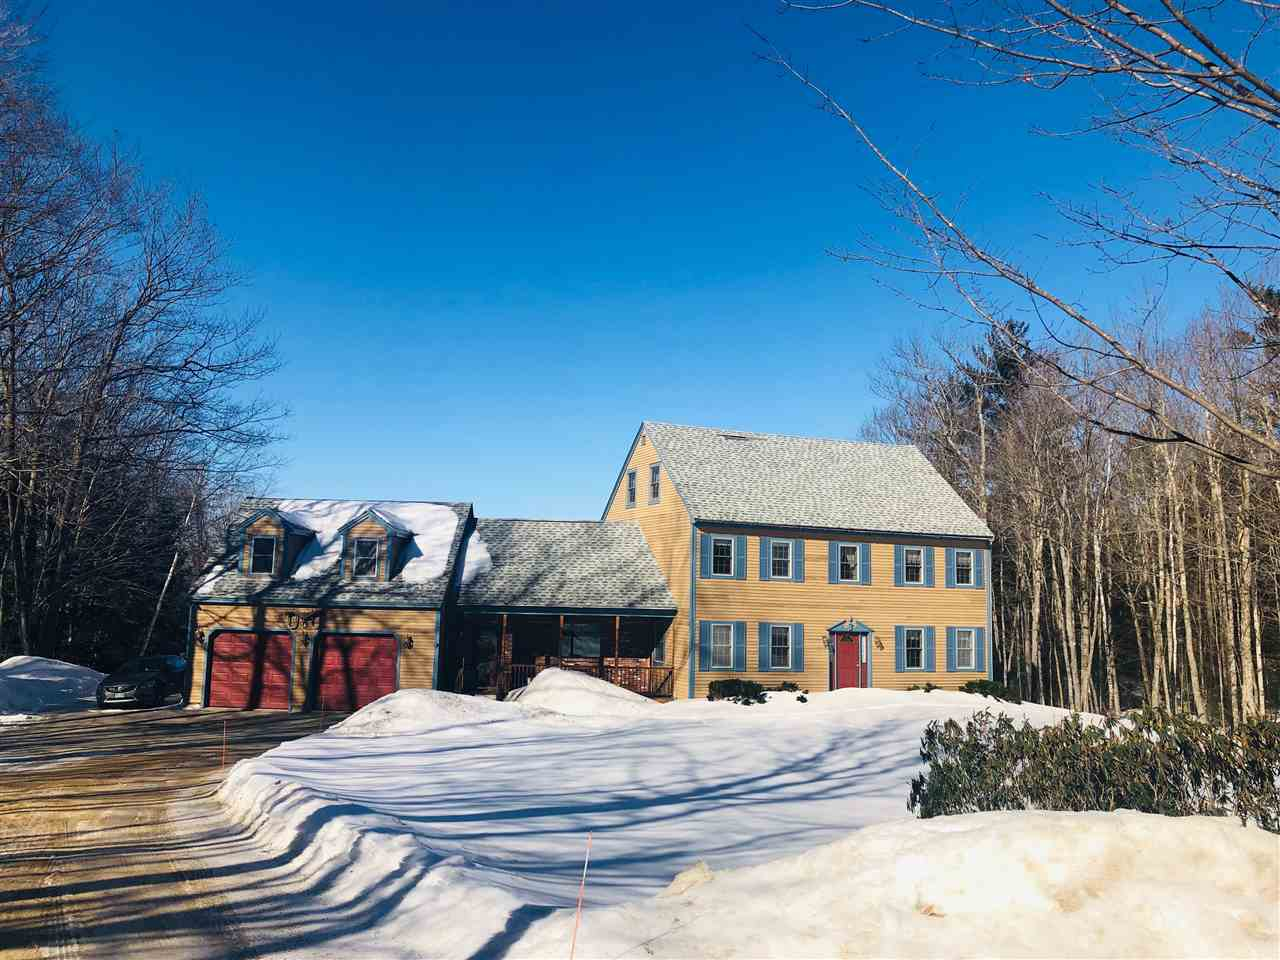 MLS 4760677: 137 Sargent Road, Holderness NH